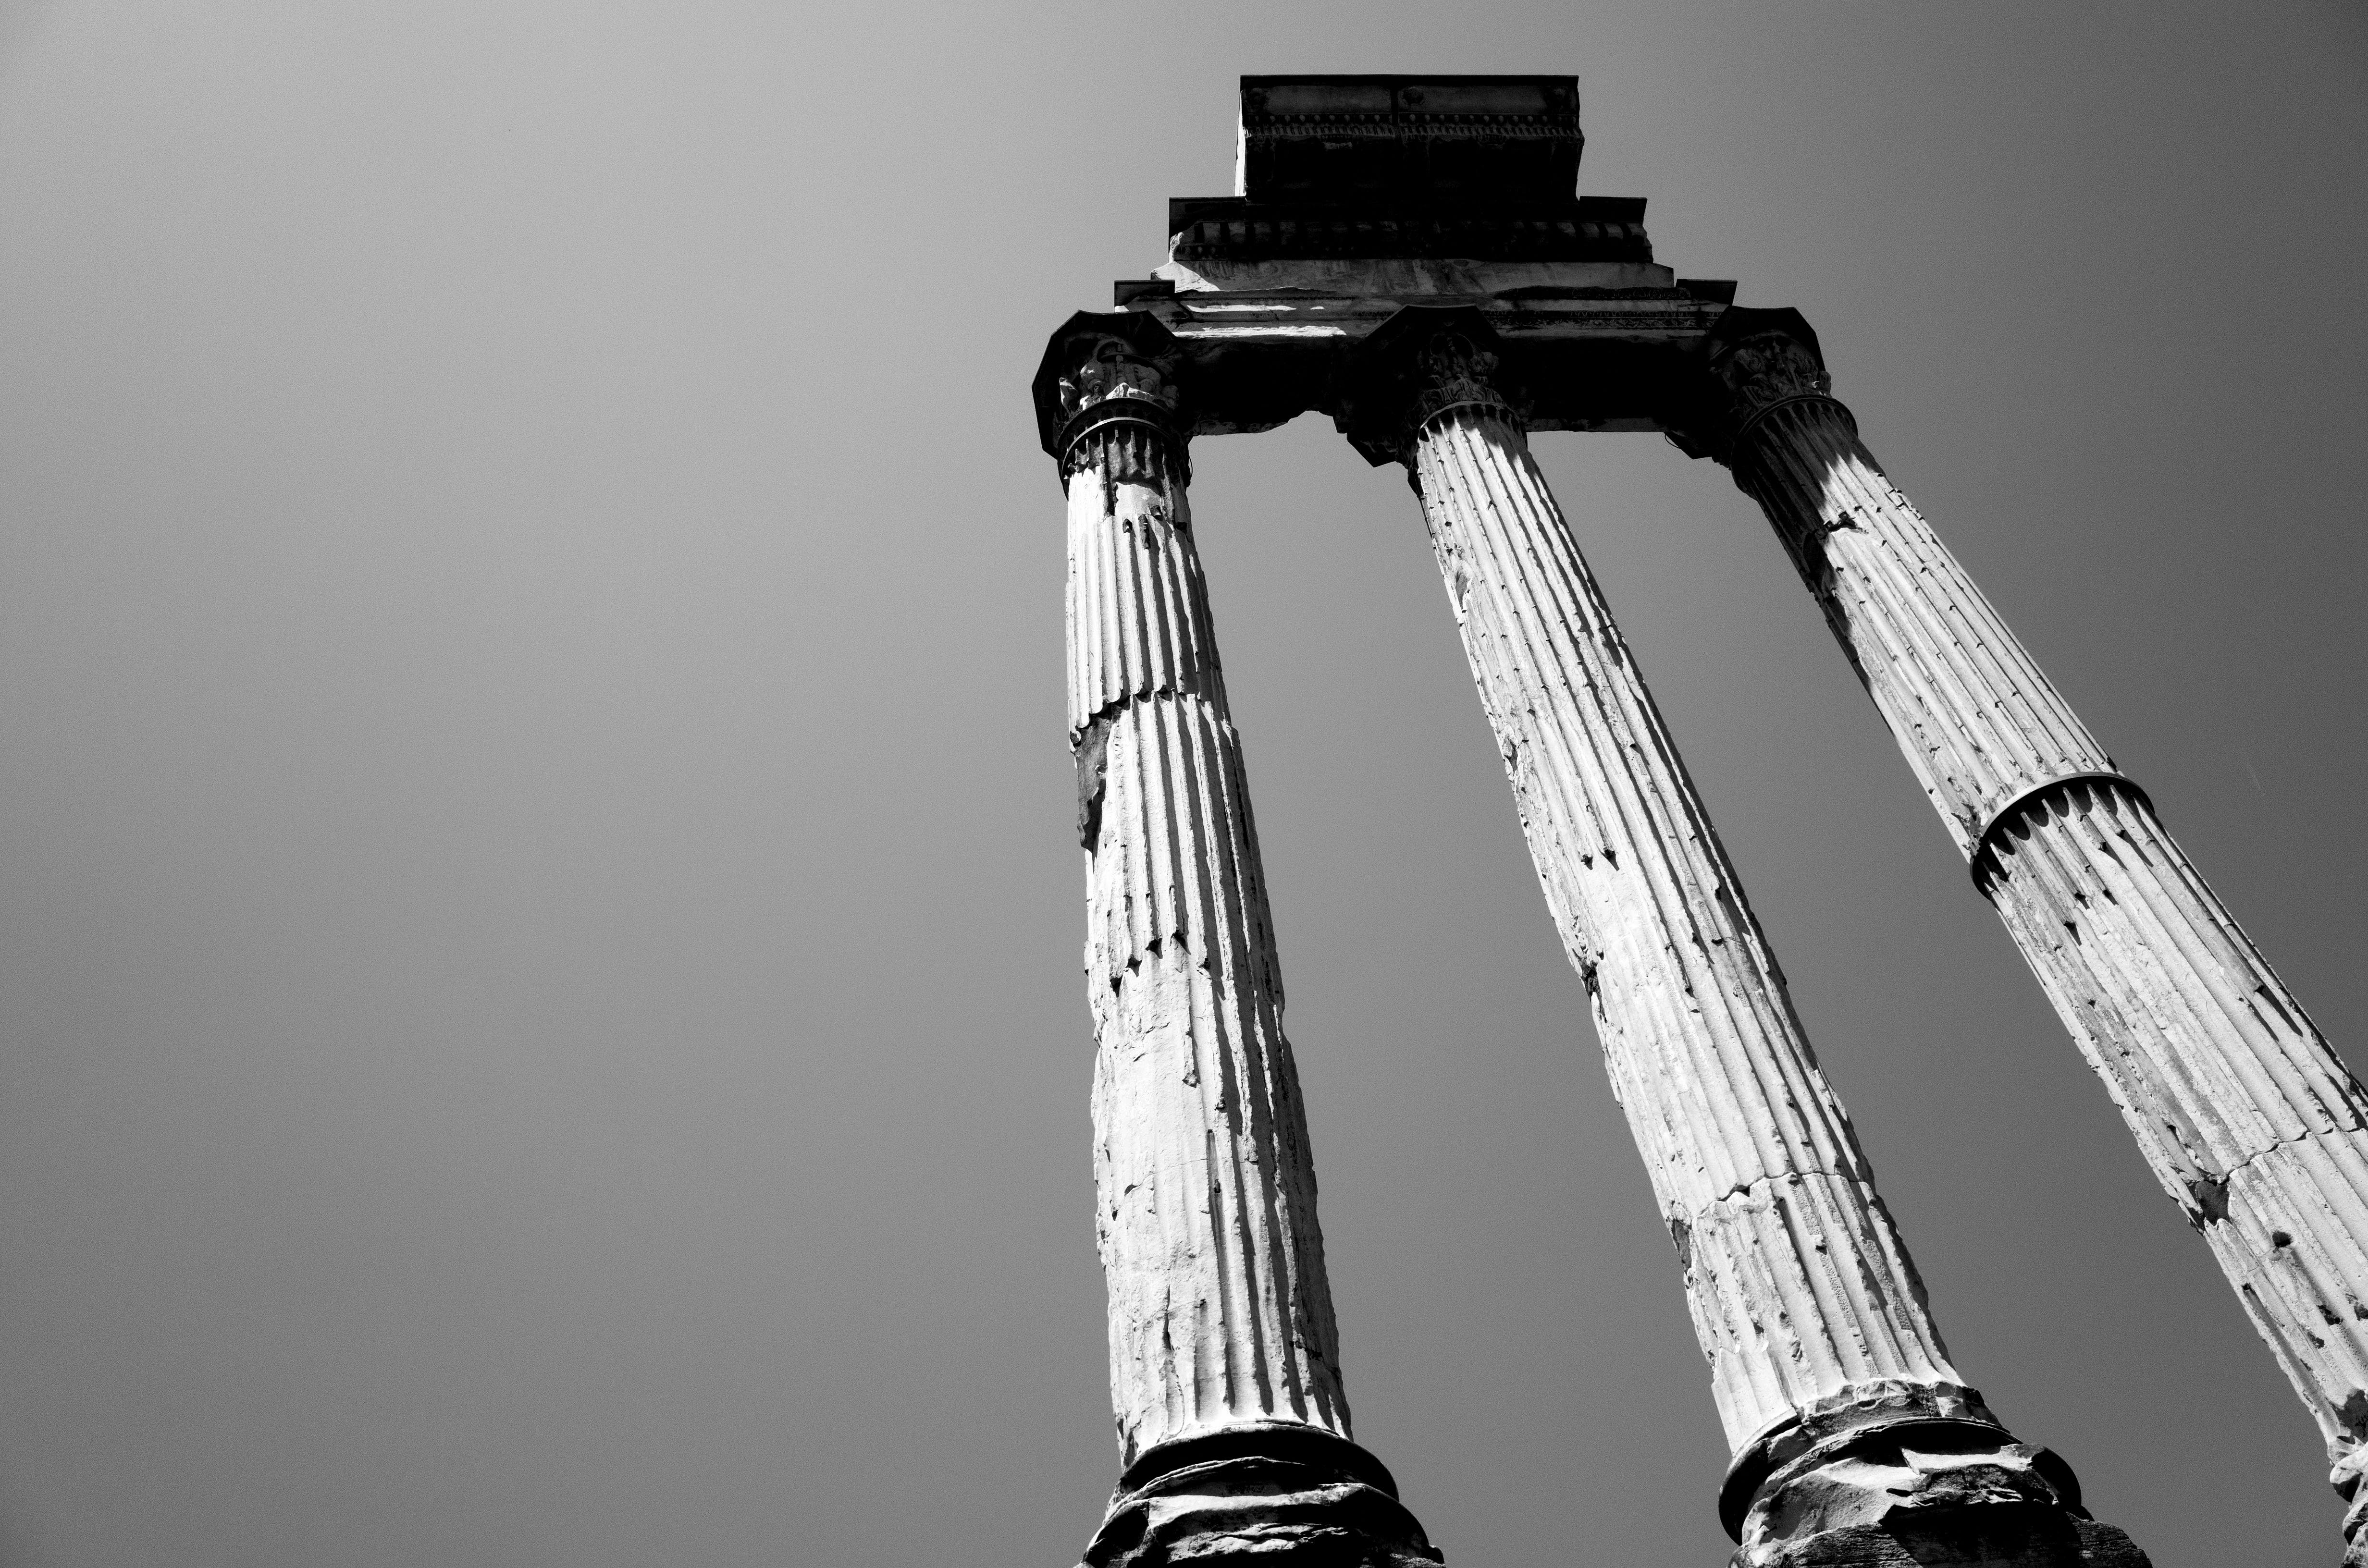 Free stock photo of architecture, black and white, columns, empire